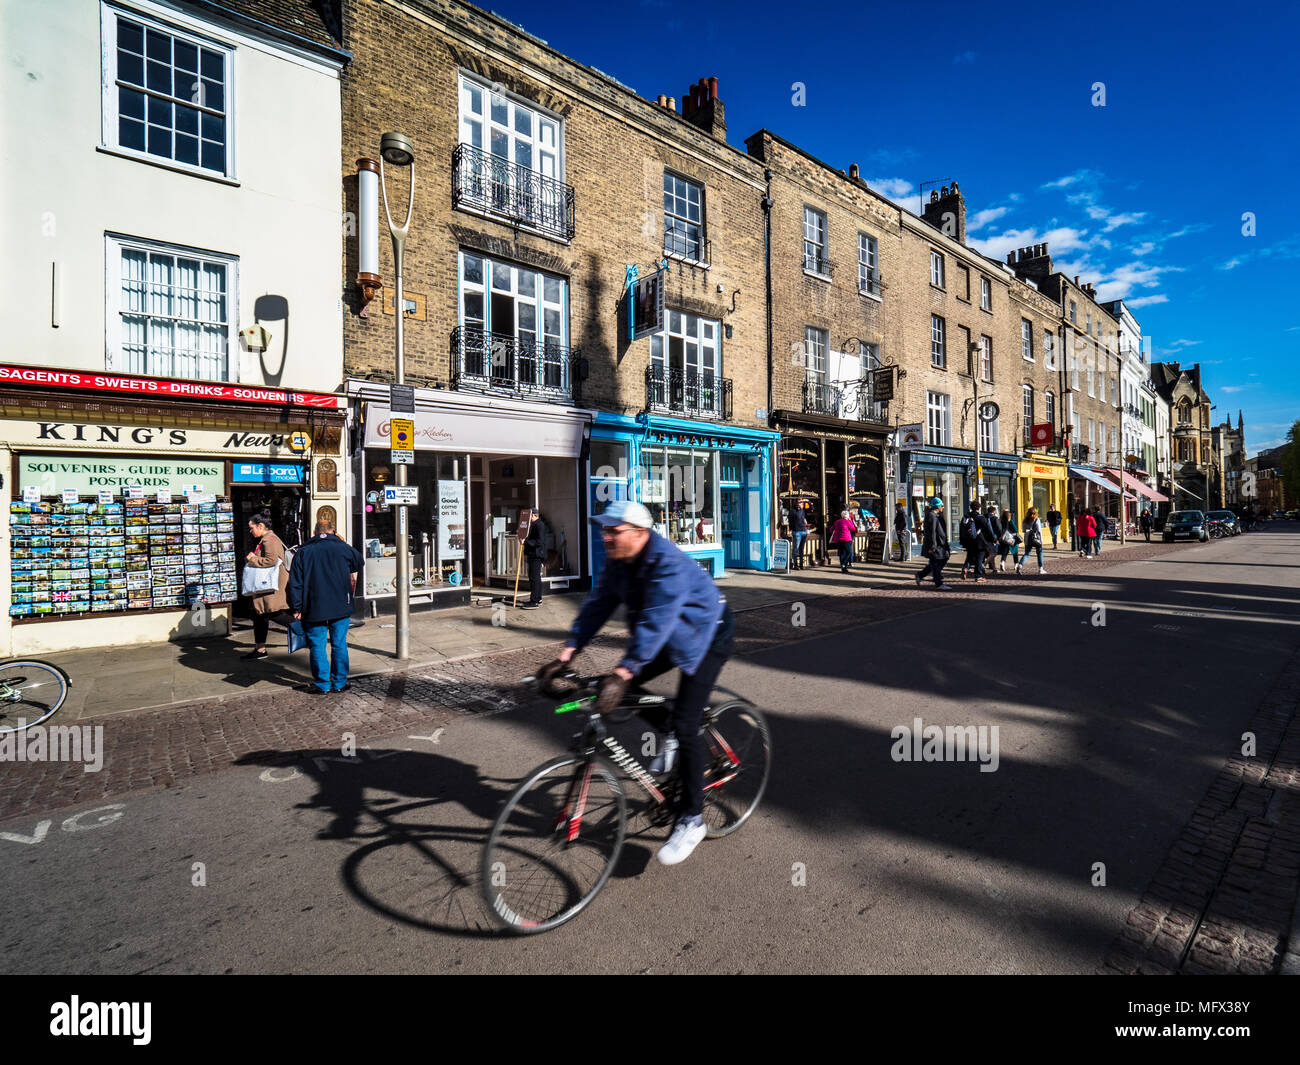 Kings Parade in the historic centre of Cambridge UK, independent retailers opposite Kings College - Stock Image